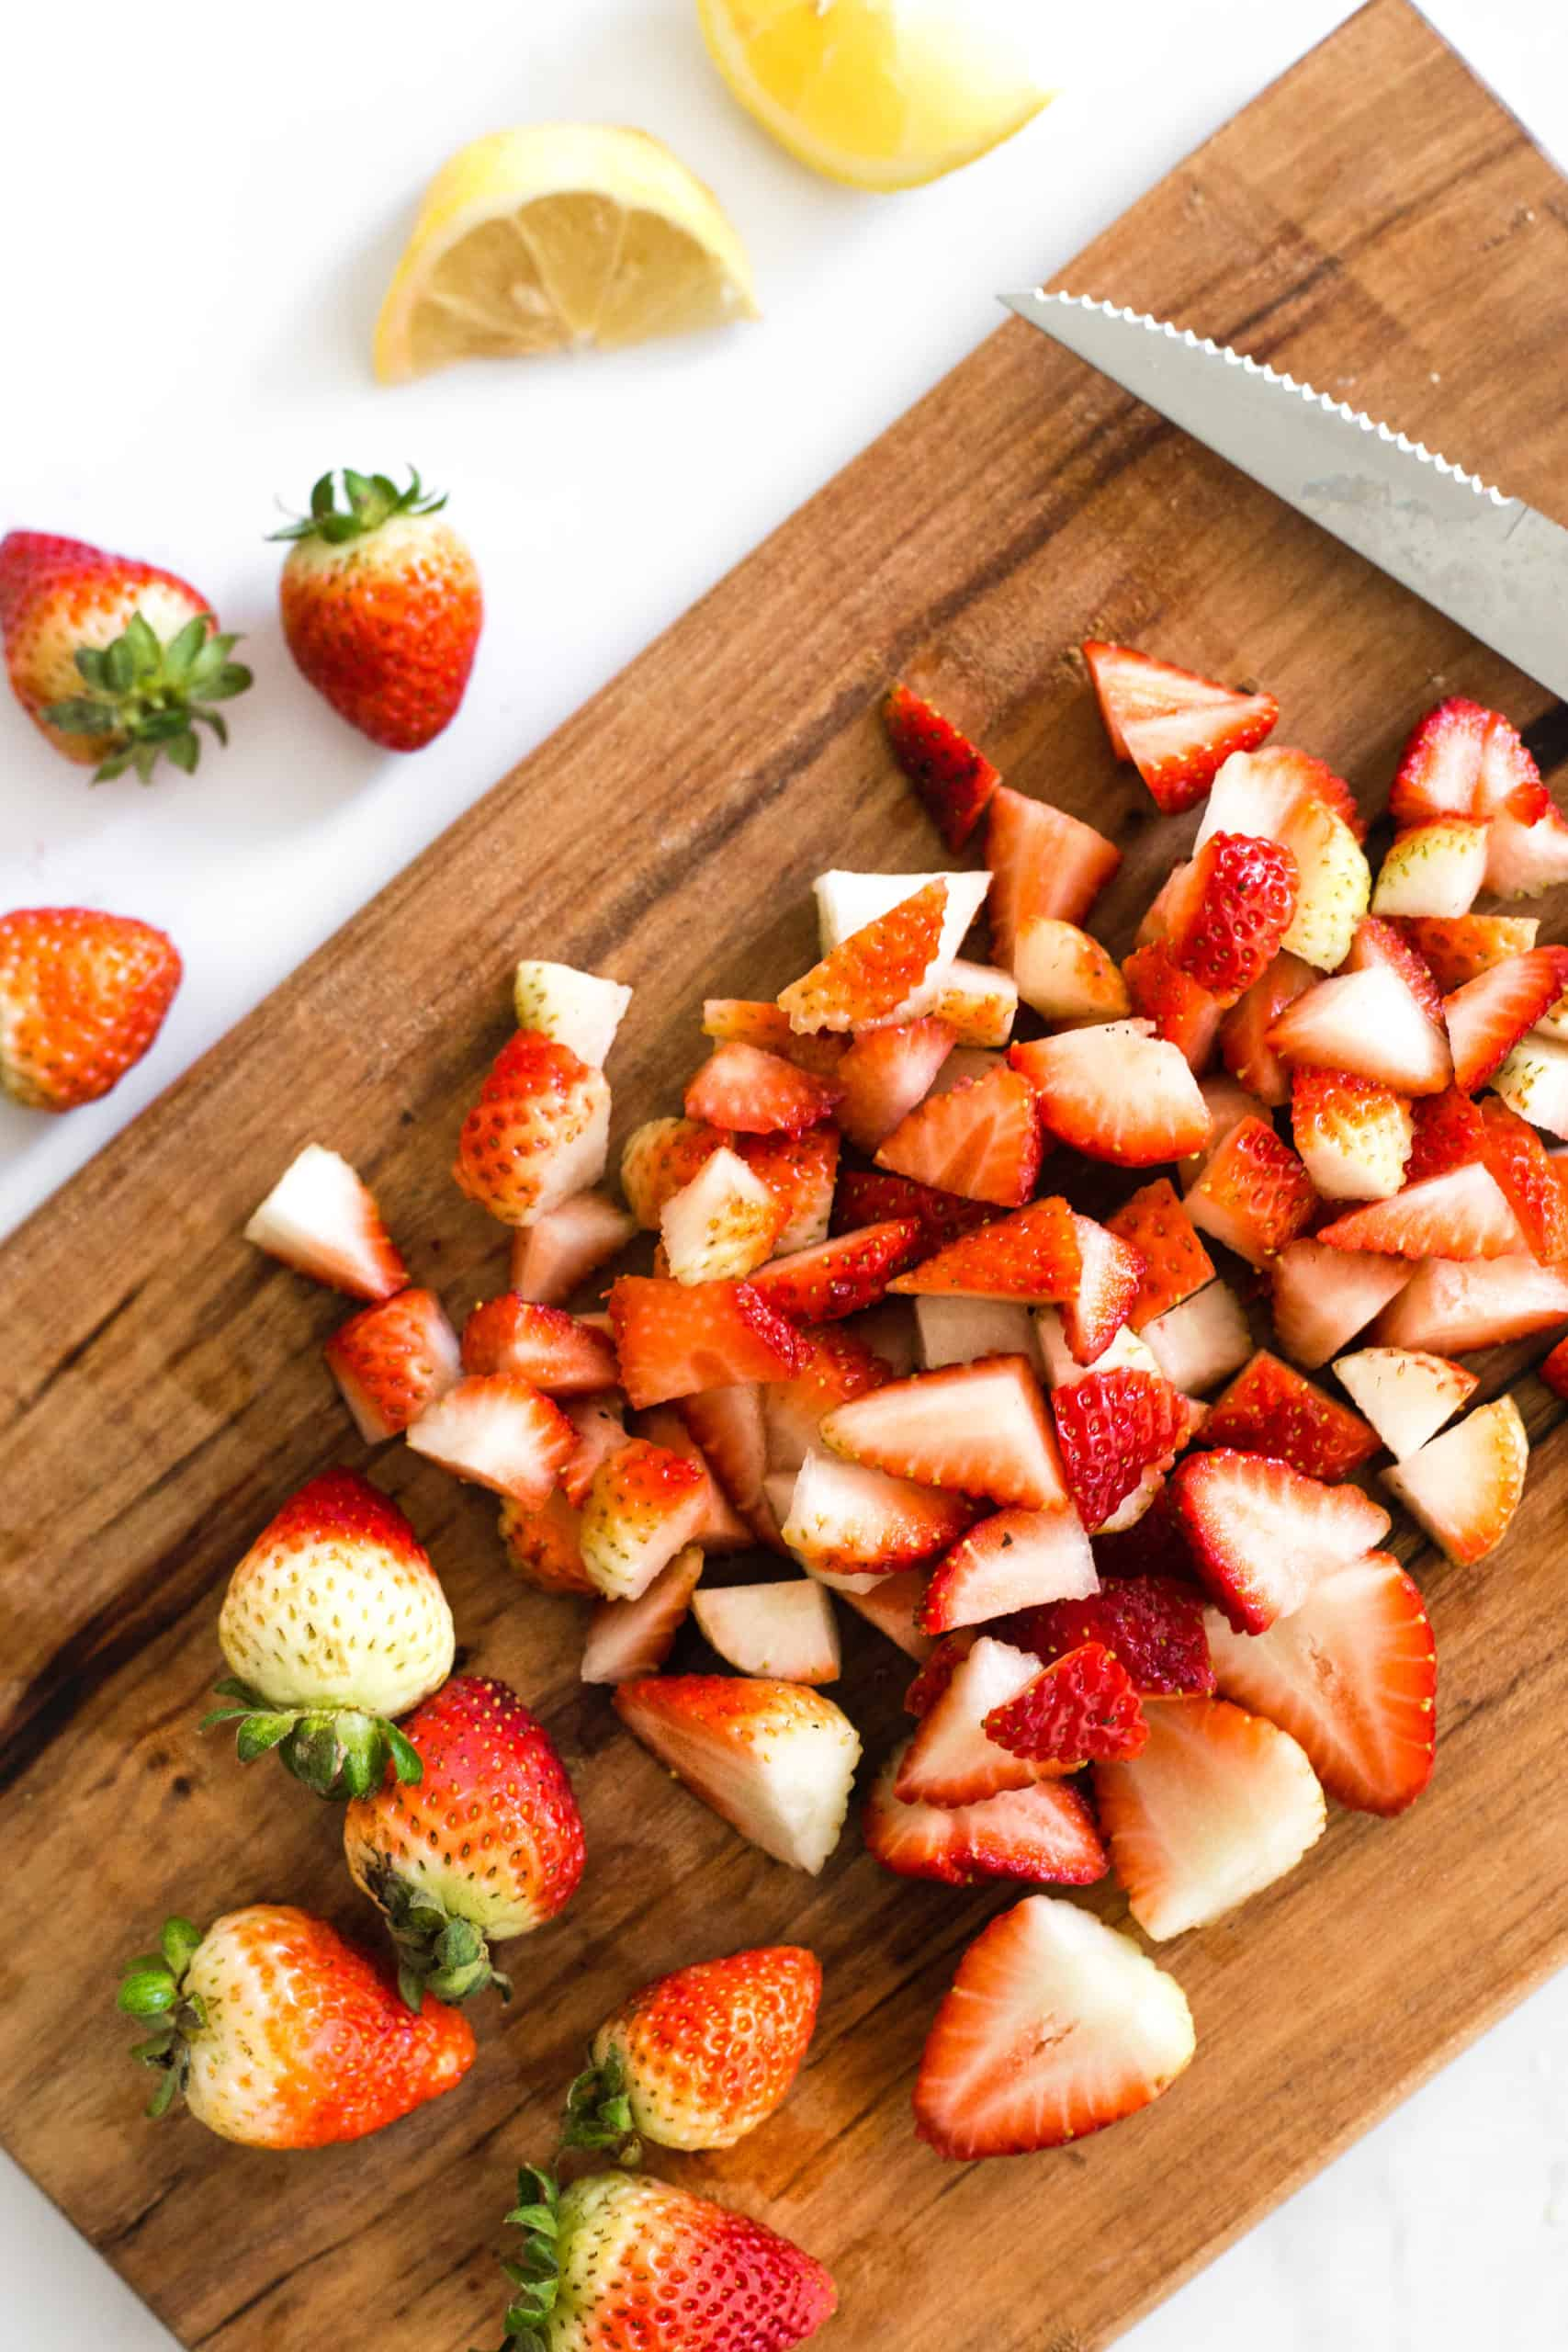 Cut strawberries on a wooden chopping board